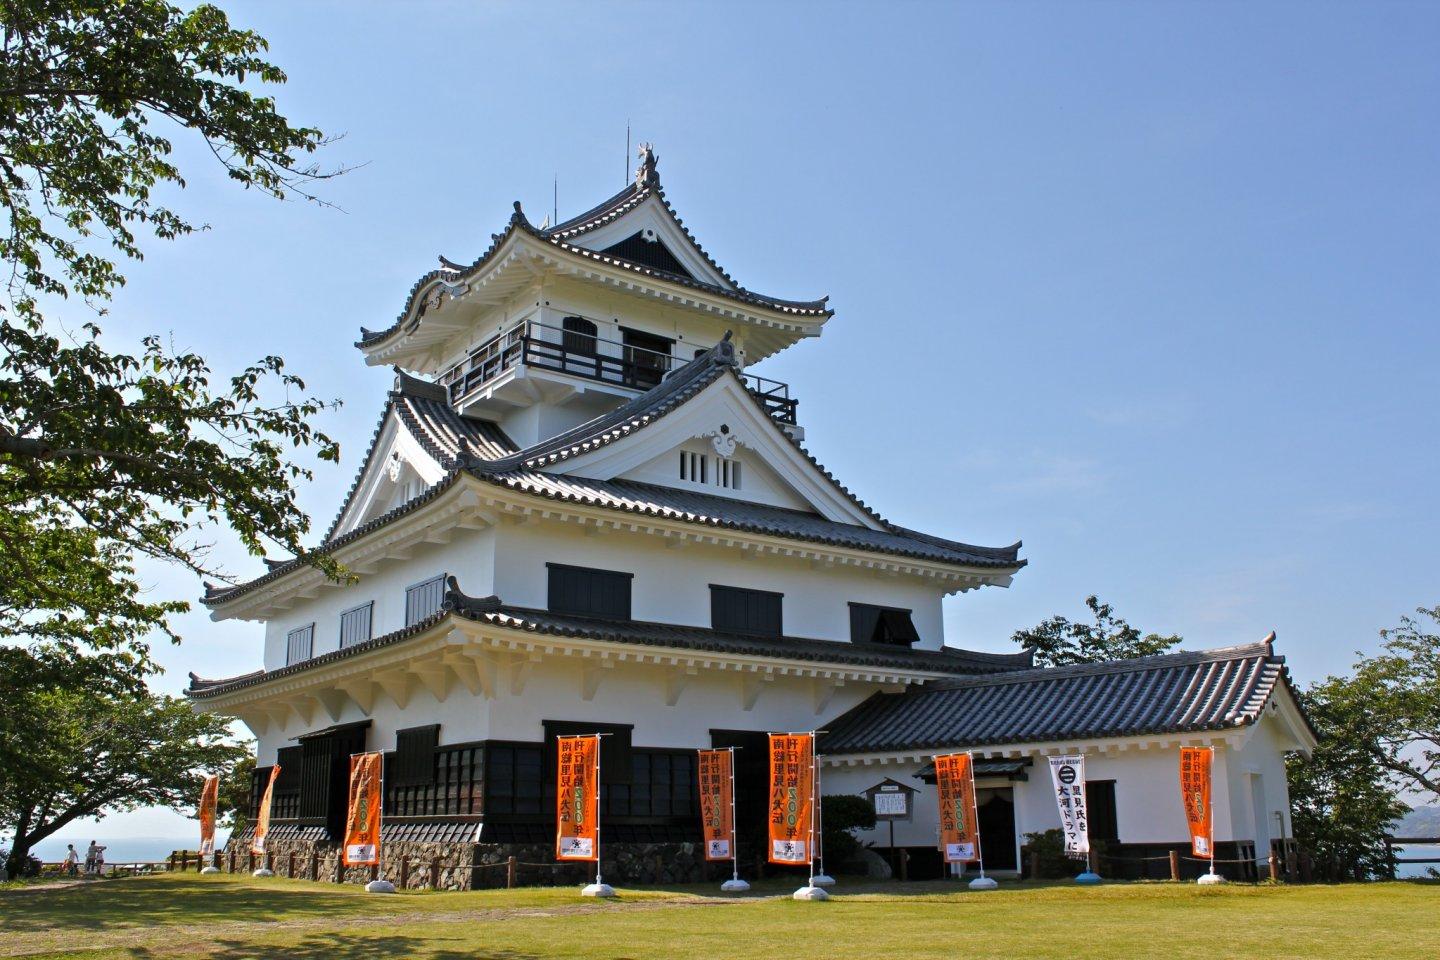 TateyamaCastle, also known as Hakkenden Museum, ismodeled after a castle of the Tenshou period (1573-1592). It is composed of a main turret with a large roof supported by a horizontal beam capped off by a small watchtower.